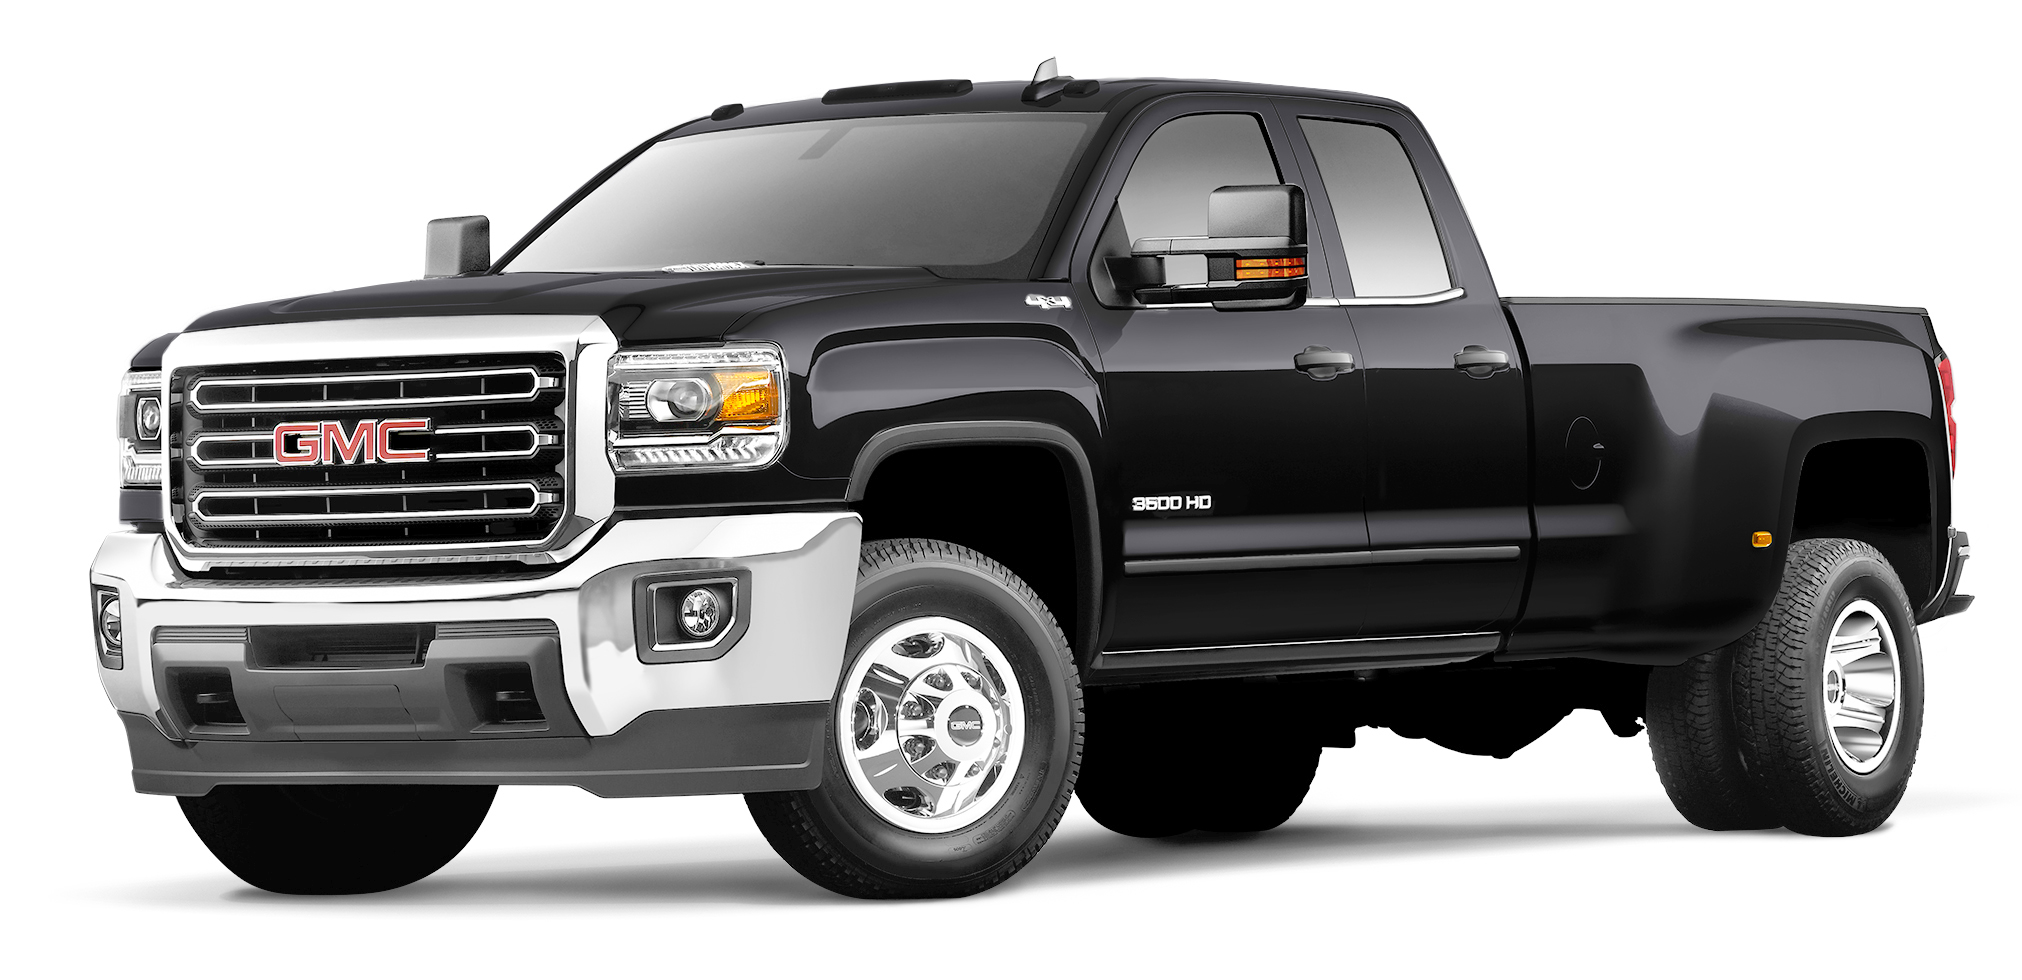 GMC Sierra 3500 HD Iridium